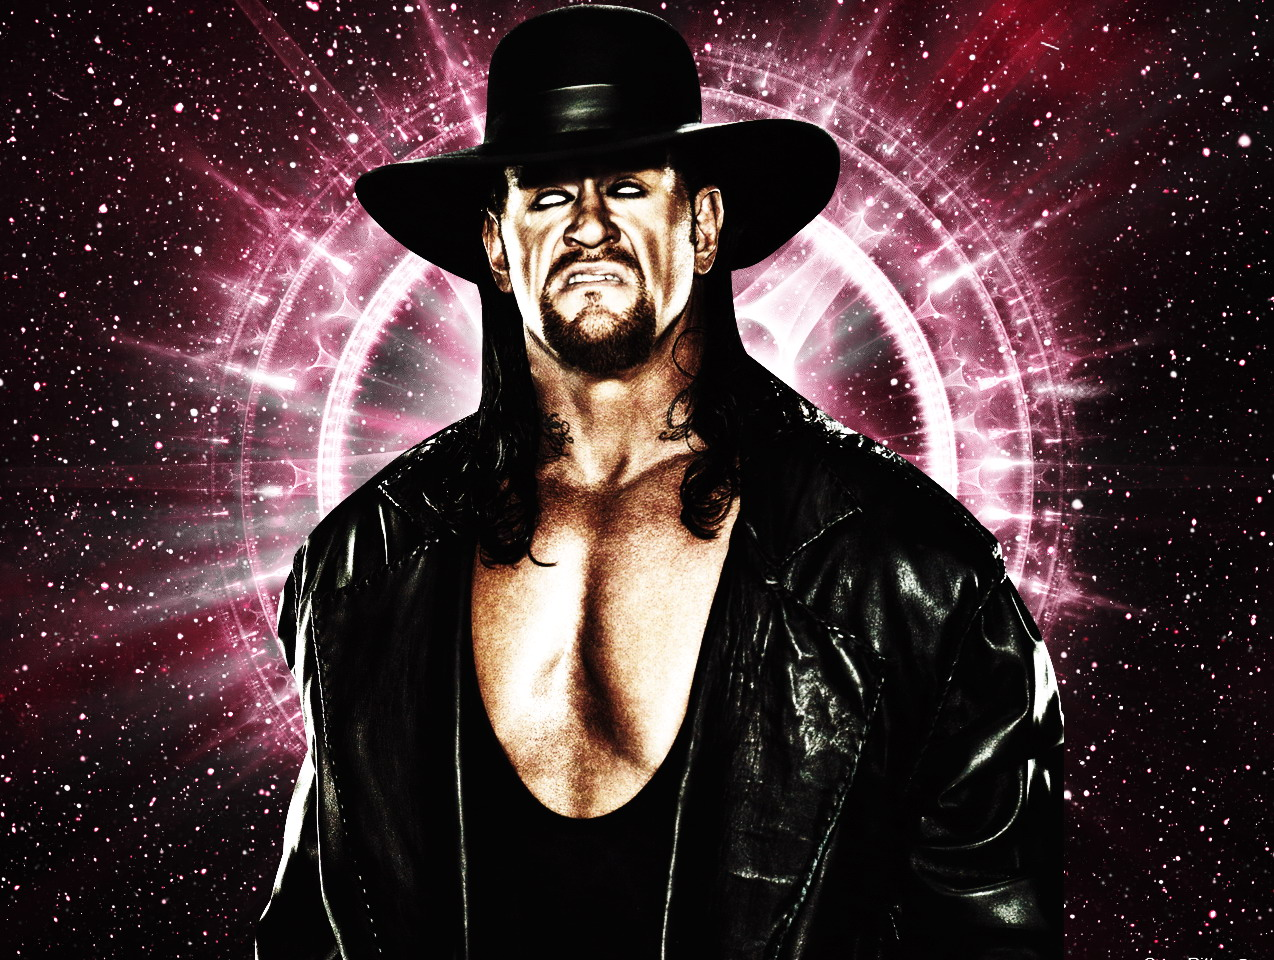 undertaker movie